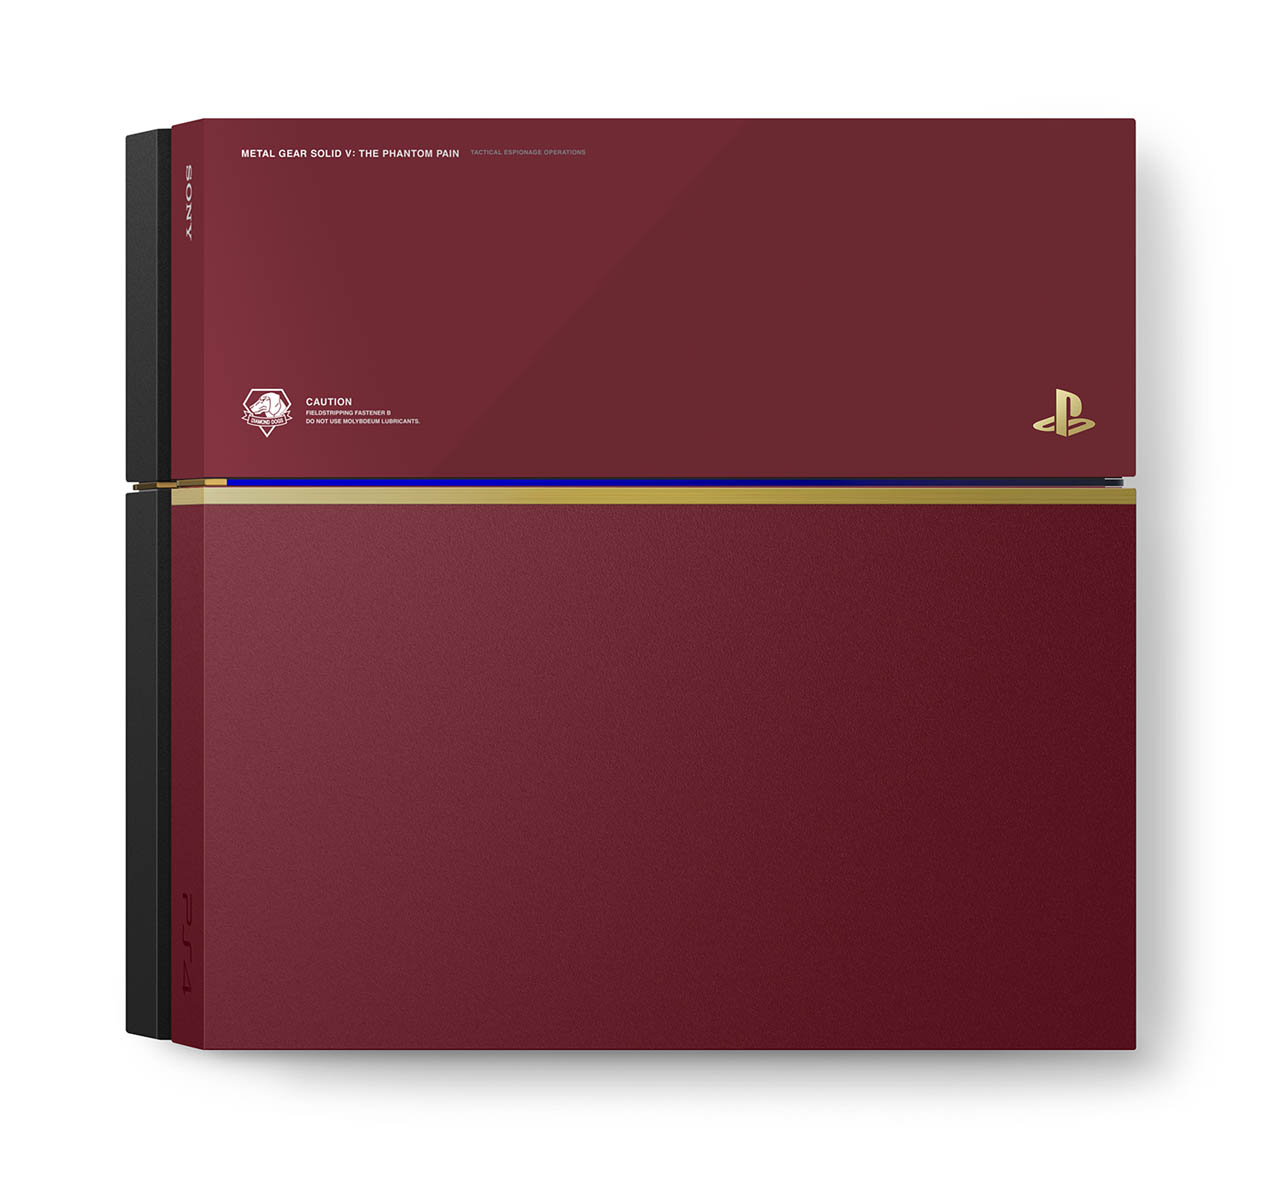 Ltd Edition MGSPP PS4 Console